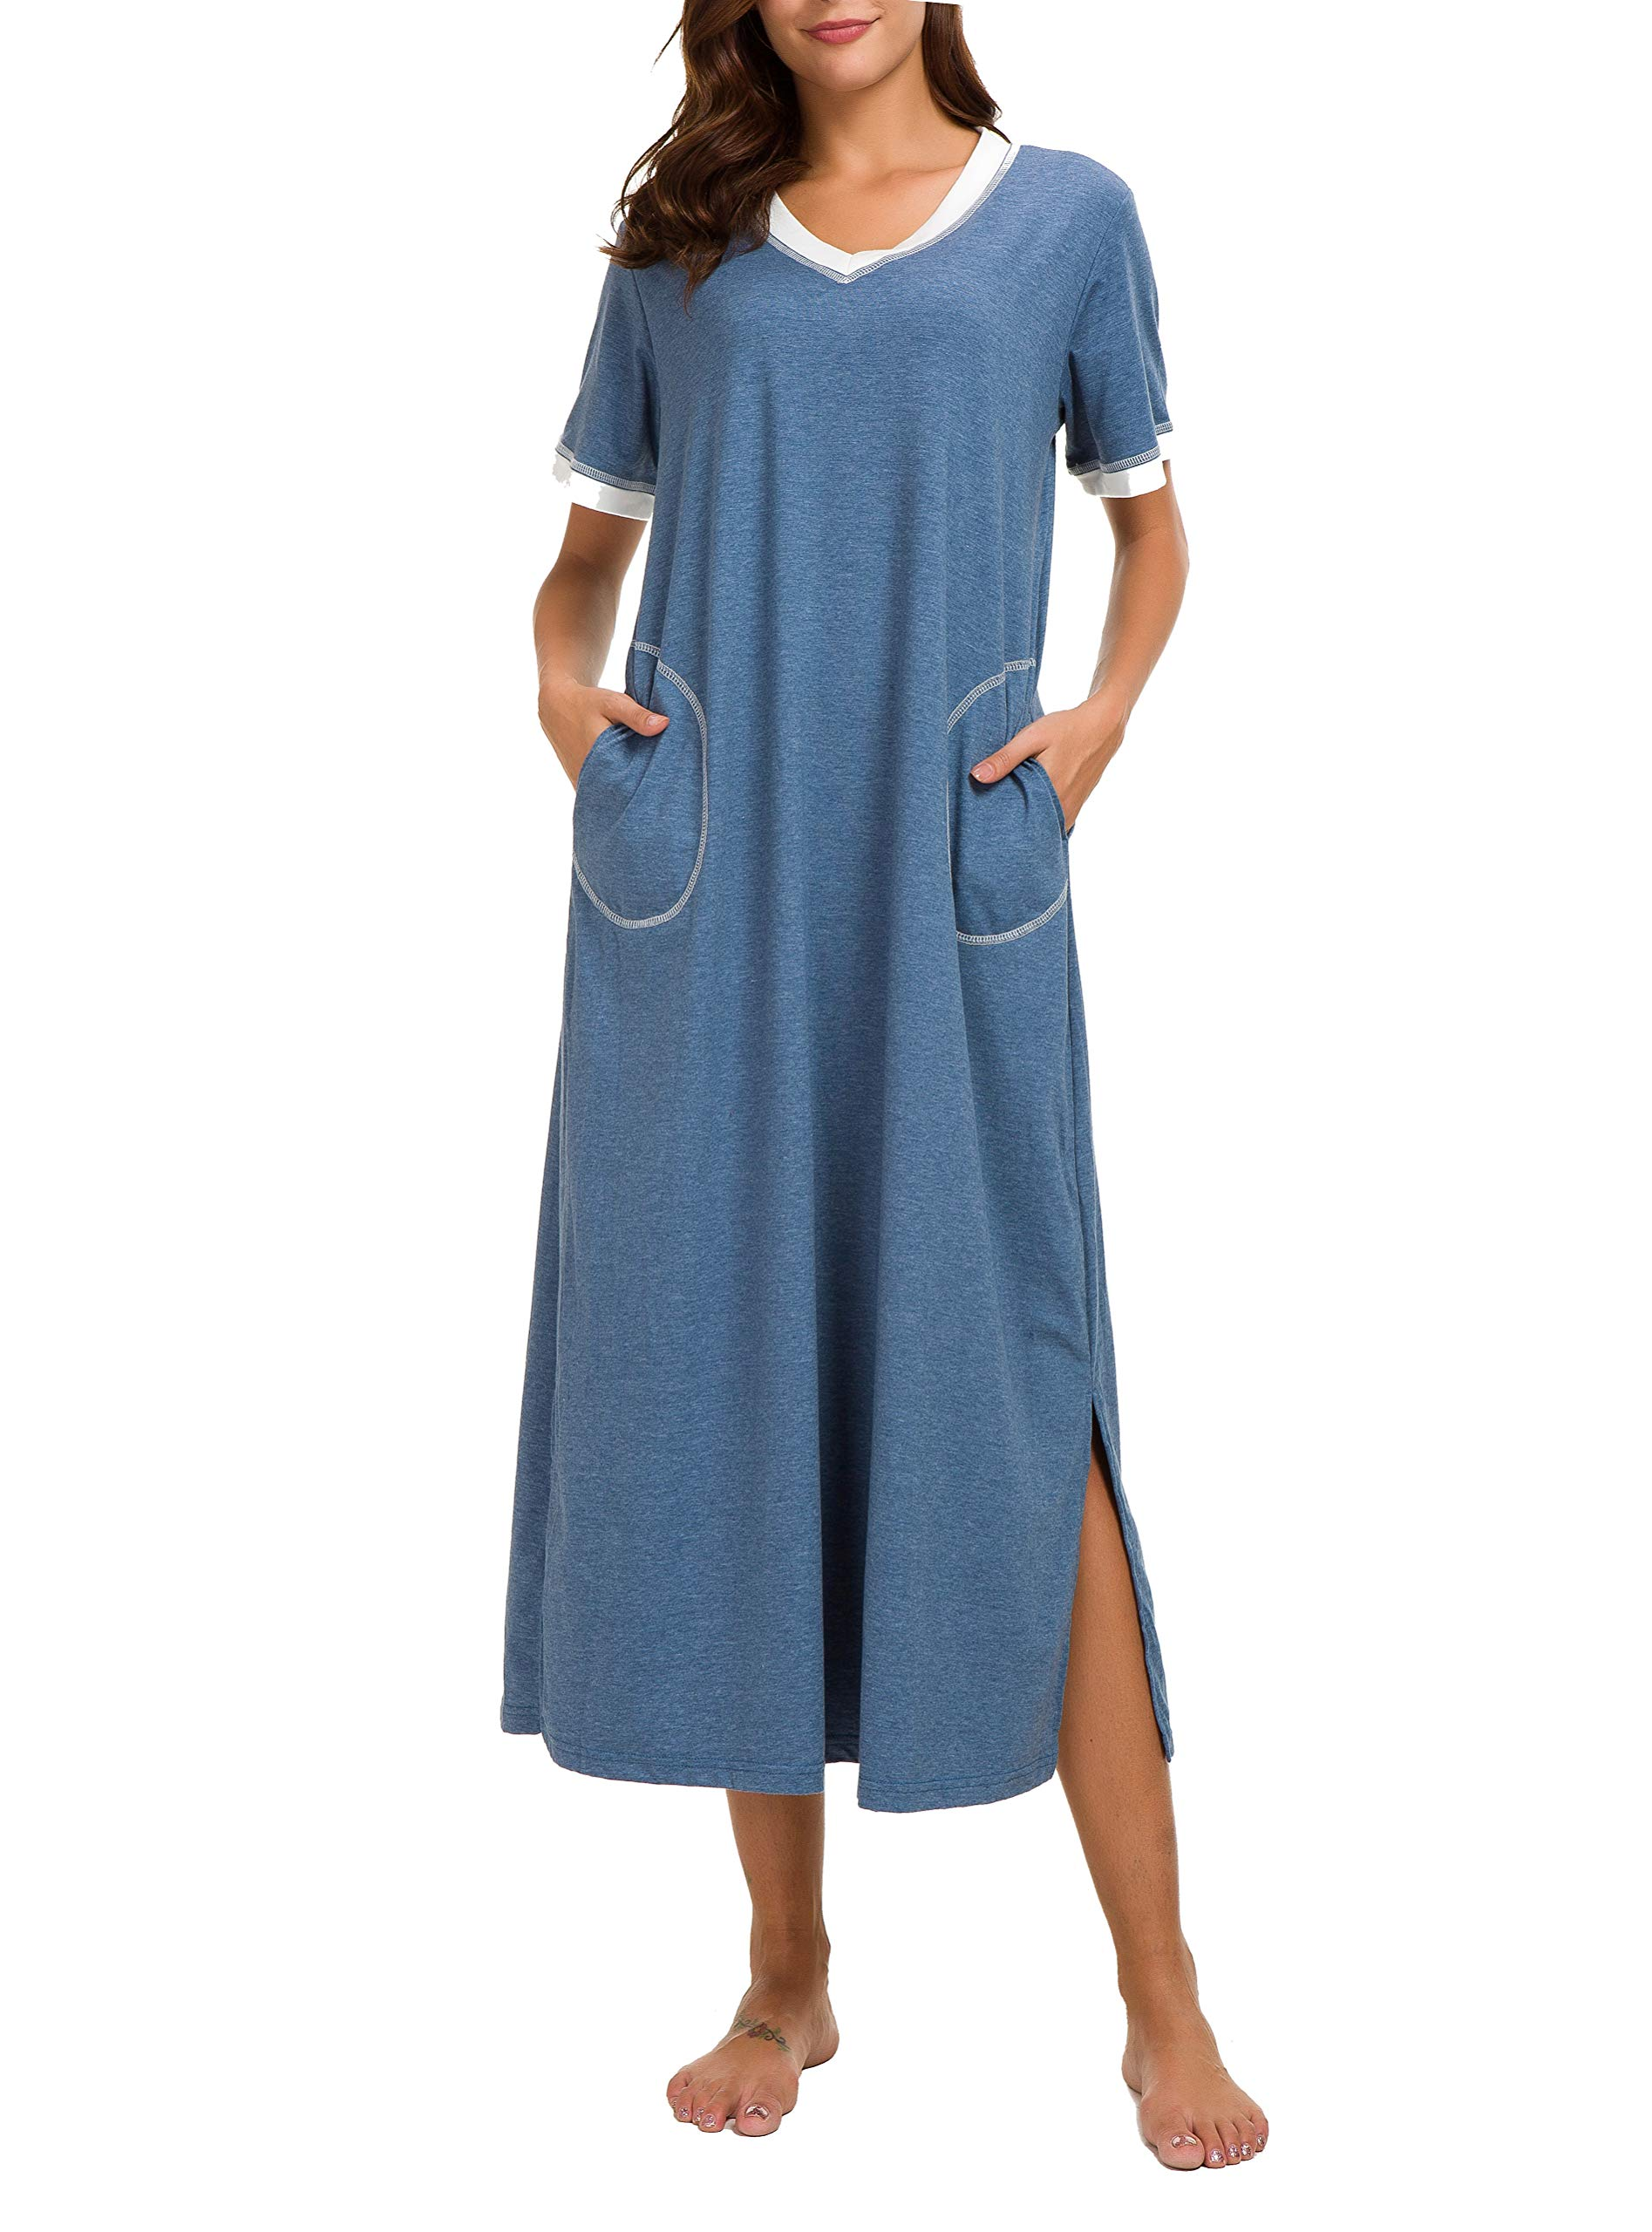 56aefeb8f2 AVIIER Long Nightgown Womens Lounge Dresses with Pockets V Neck Short  Sleeve Nightshirt Sleepwear S-